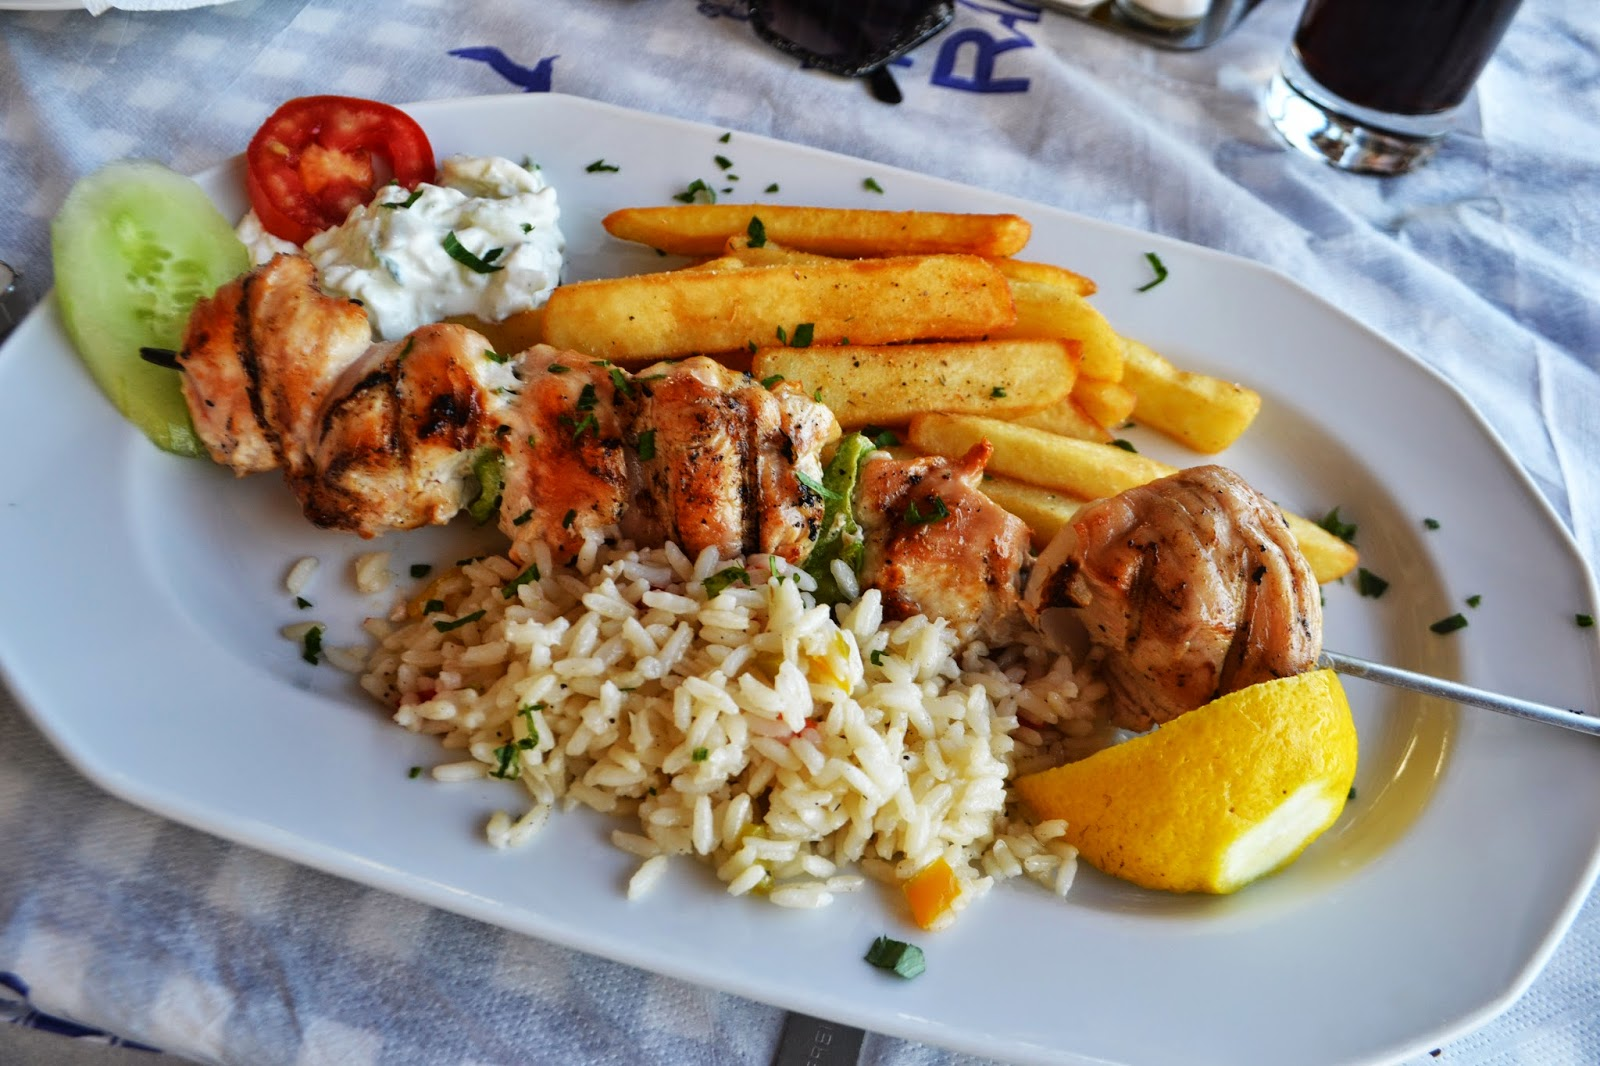 a plate of chicken souvlaki, chips, rice and a small amount of salad